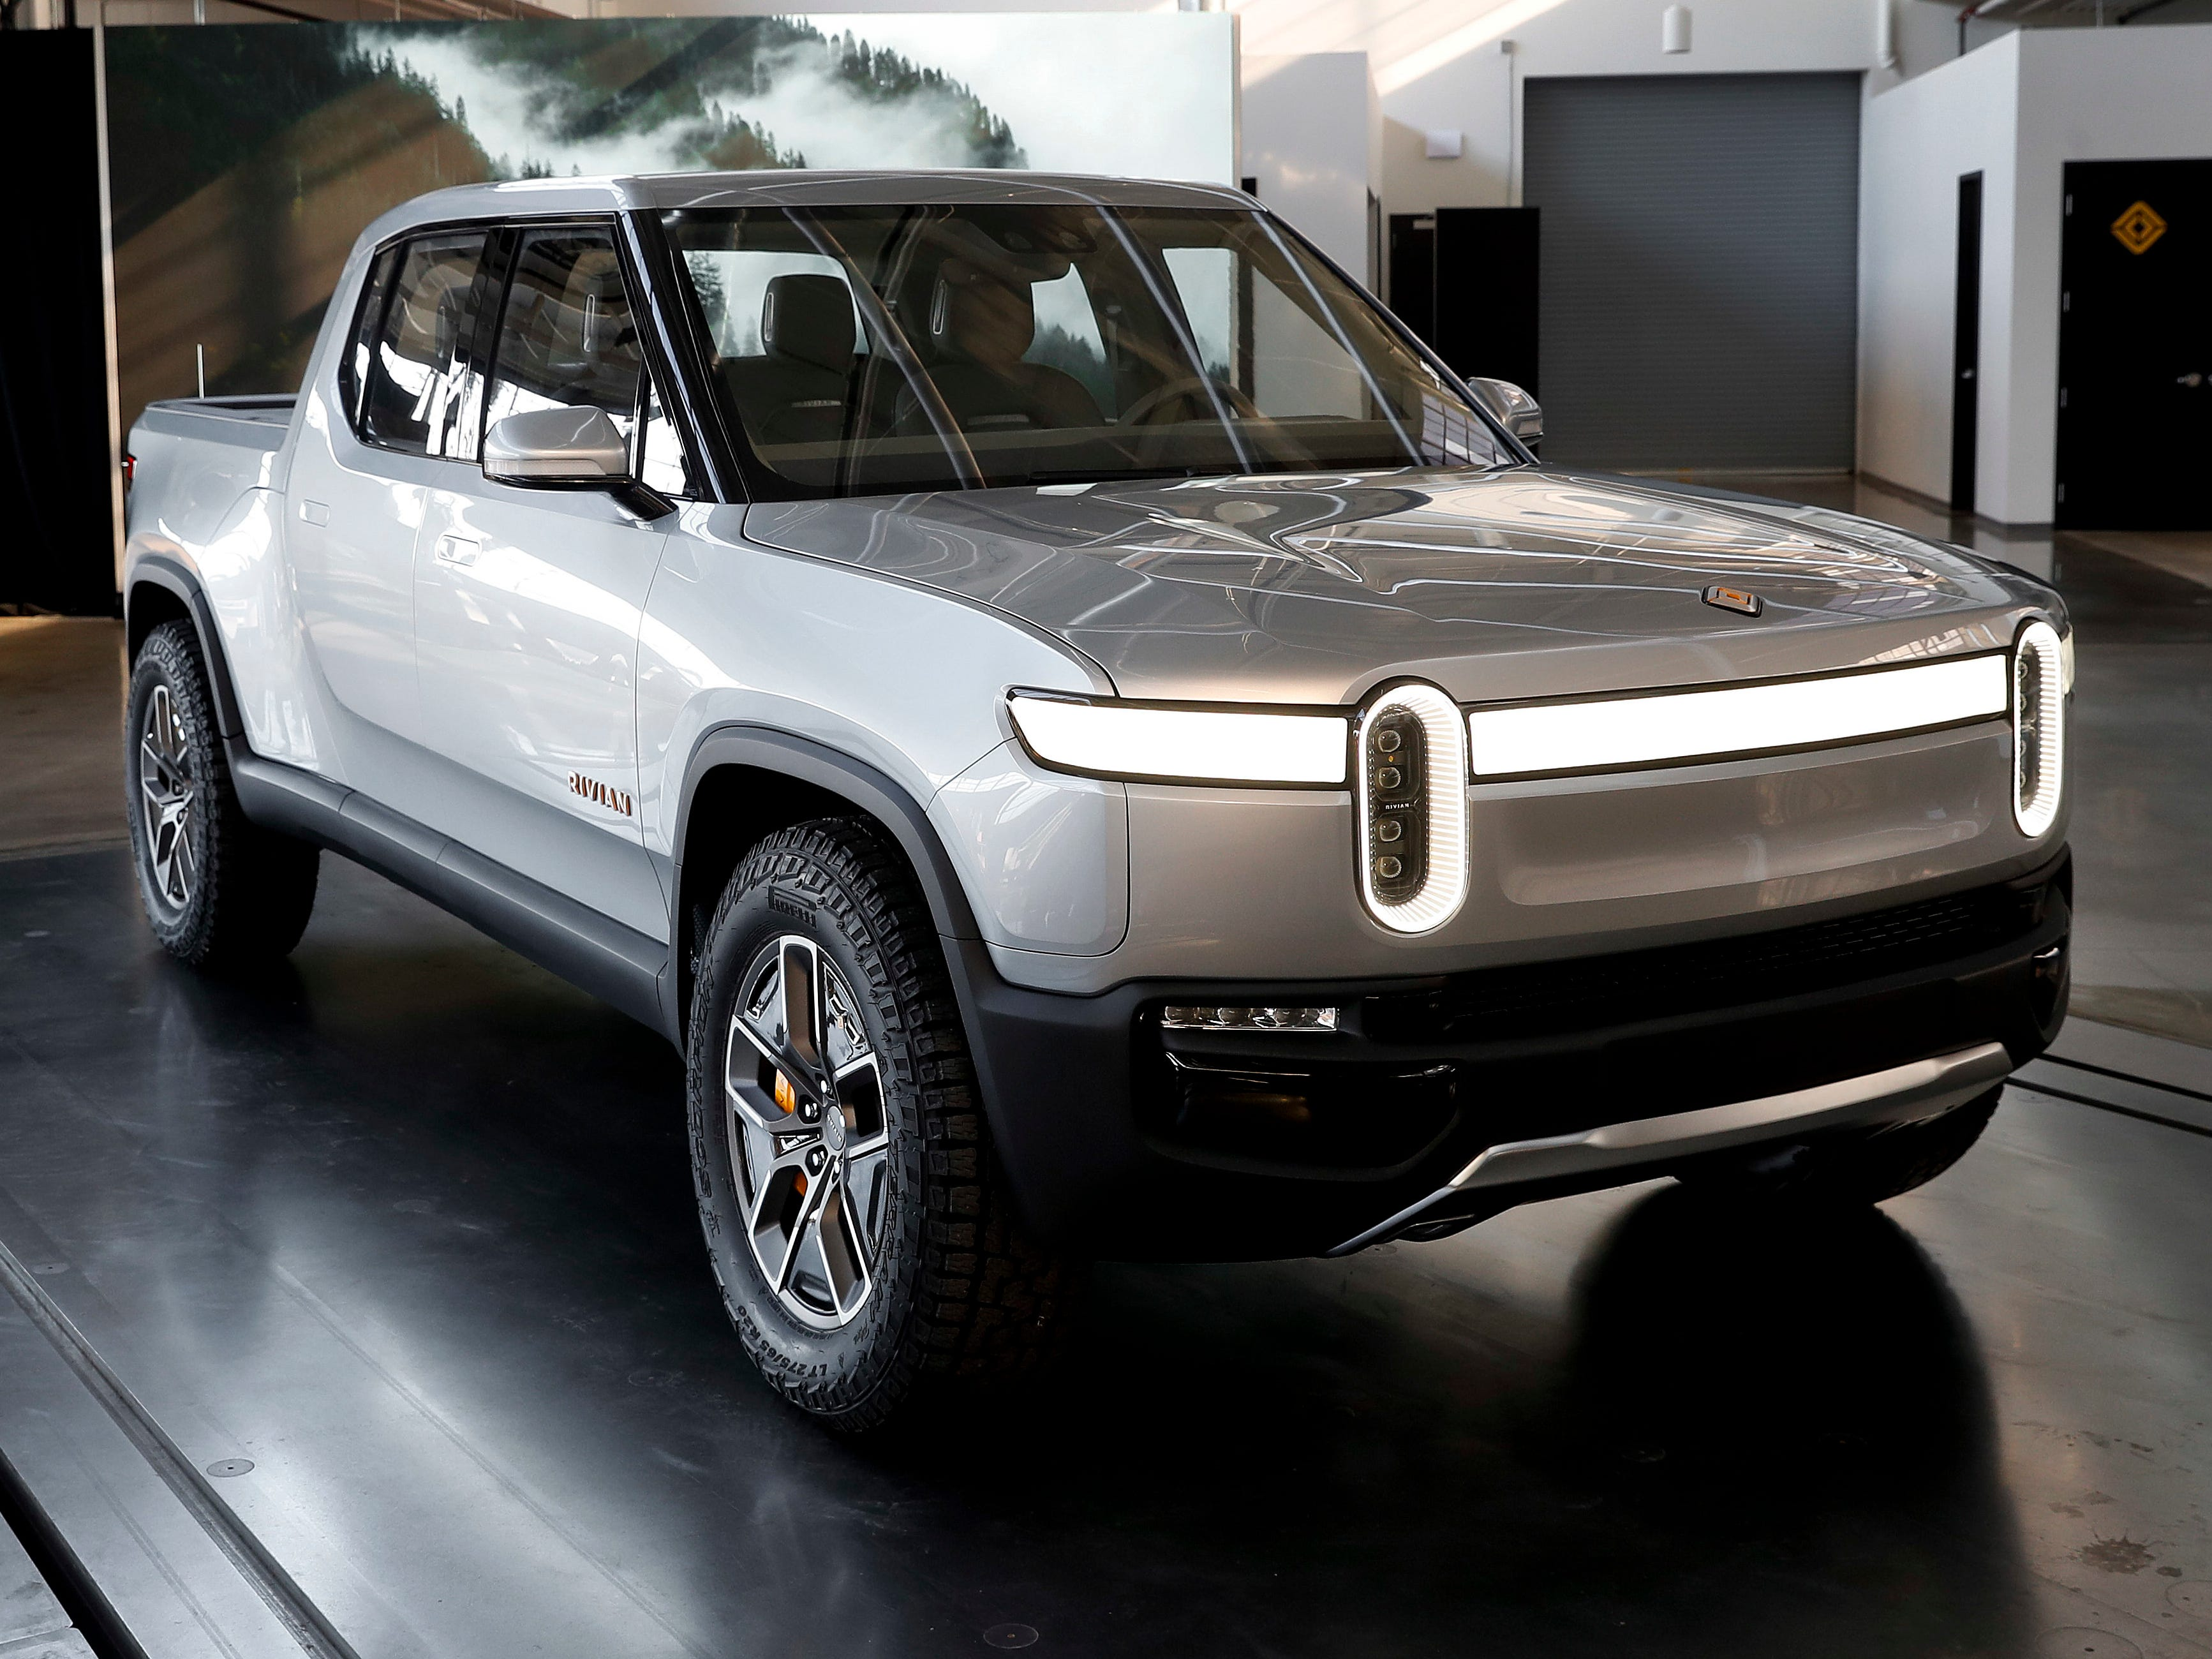 The fully electric Rivian R1T is an off-road pickup with up to 400 miles of range. Made in Normal, Illinois, it starts at $69k.